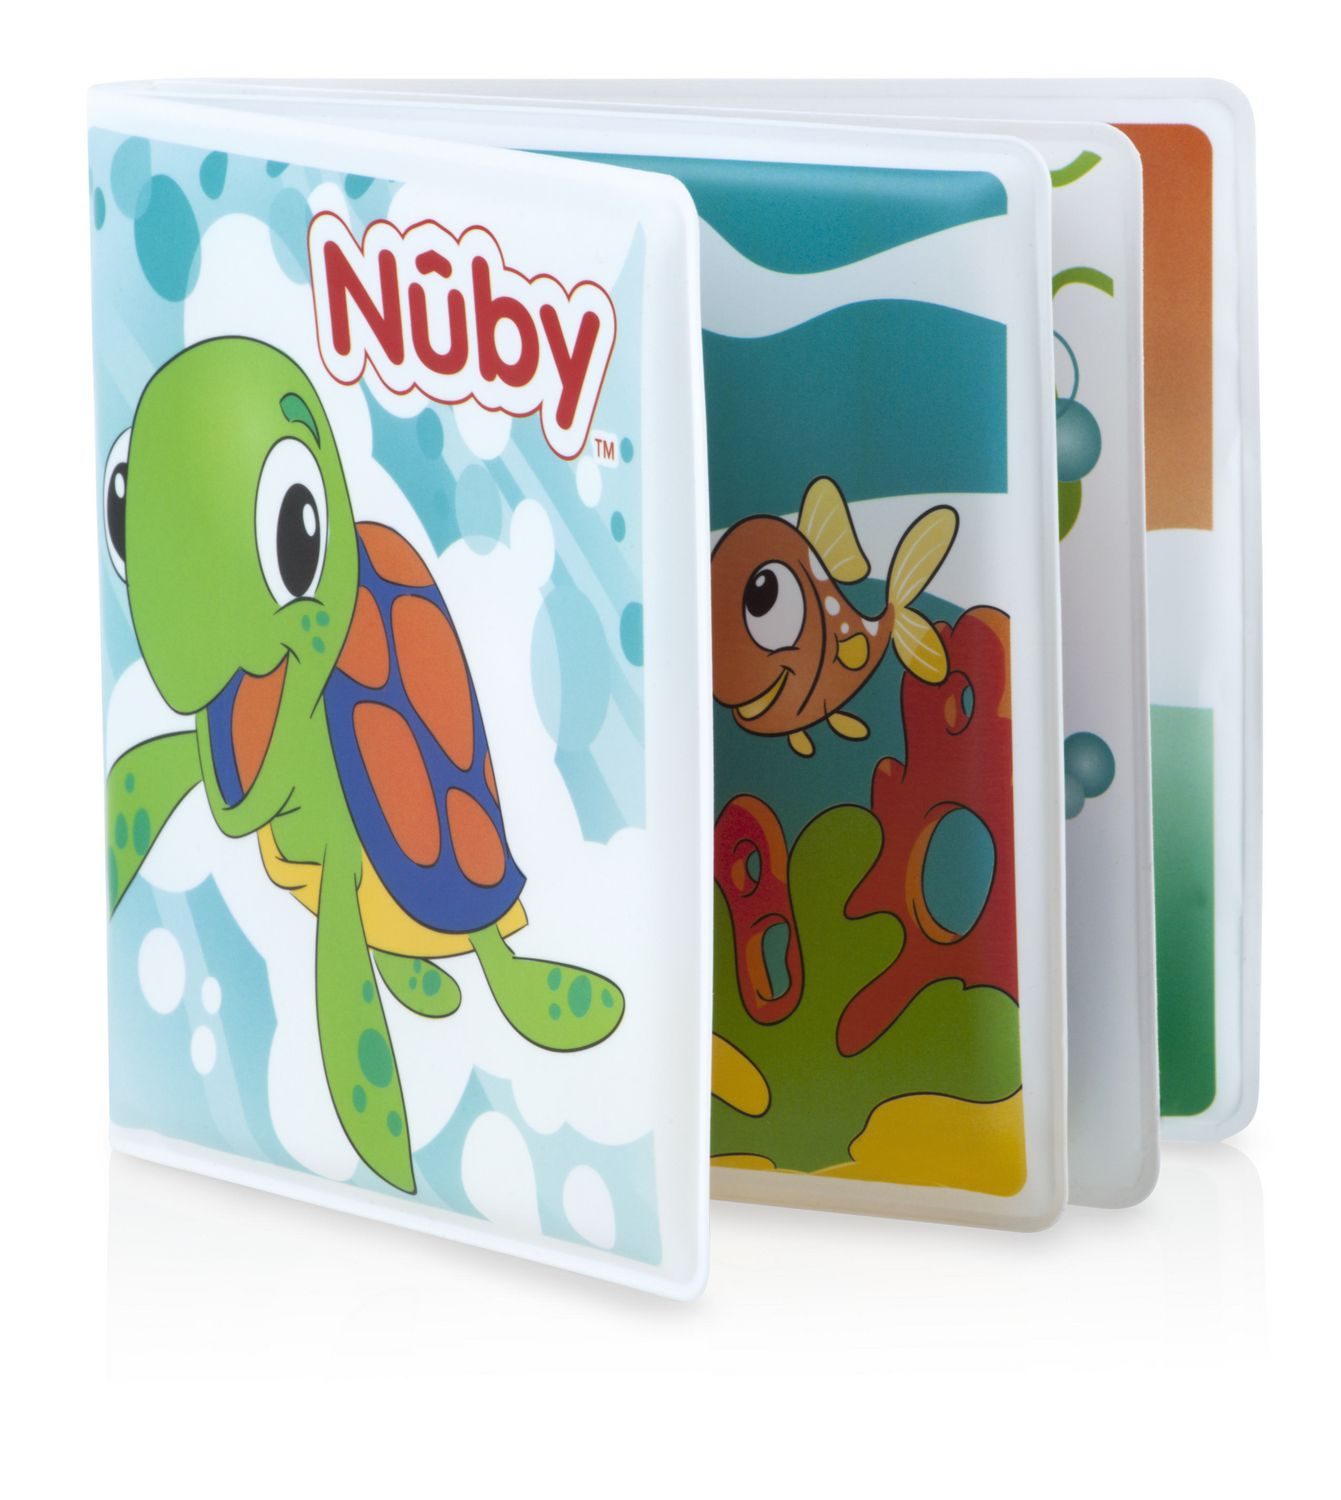 Baby bath chair walmart - Nuby Baby S Bath Book